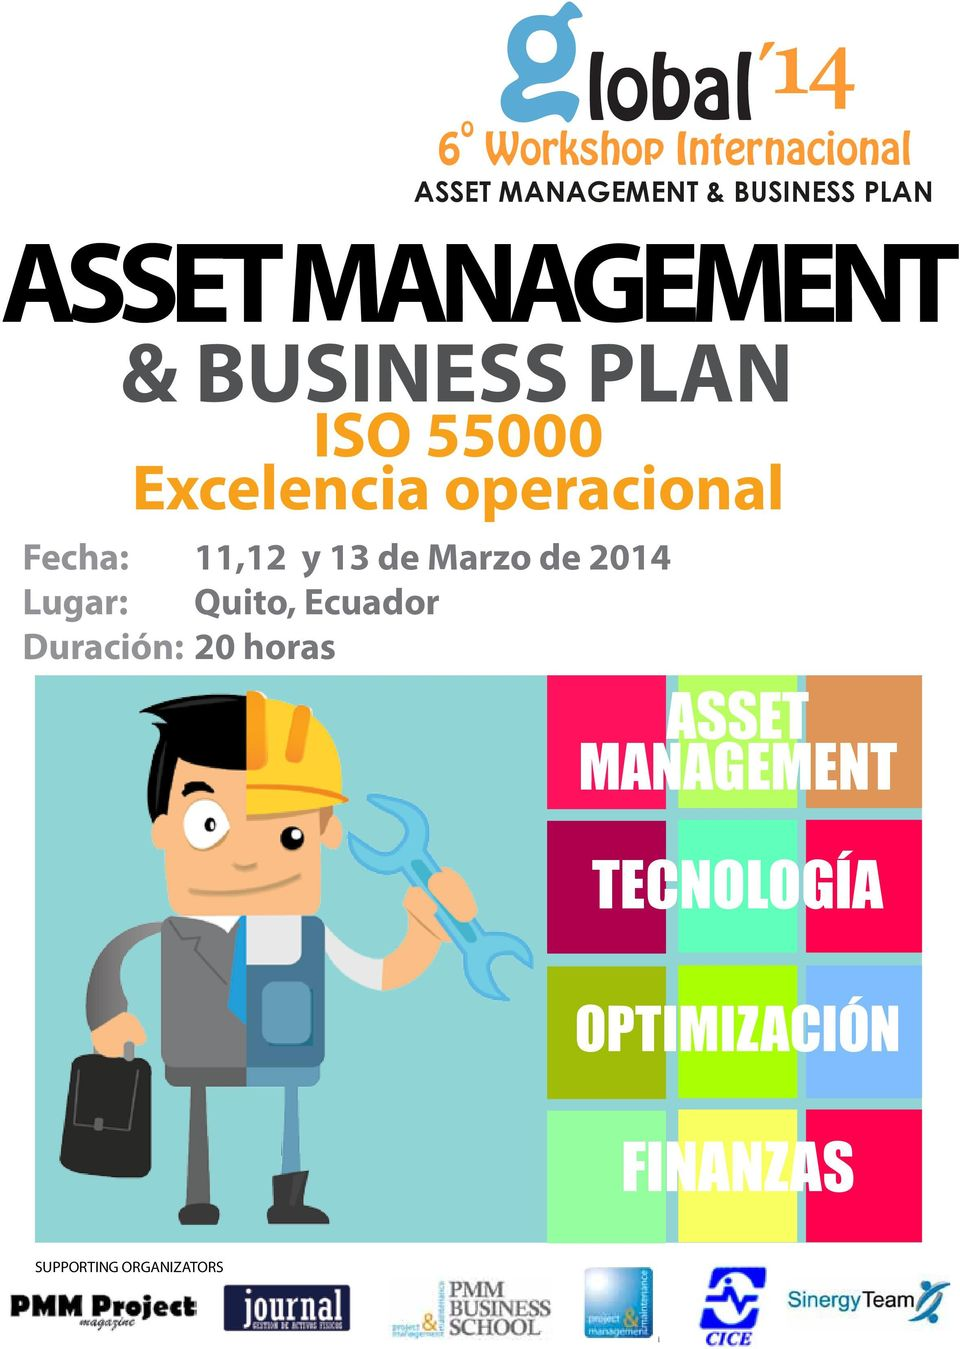 What Does a Good Strategic Asset Management Plan Look Like?